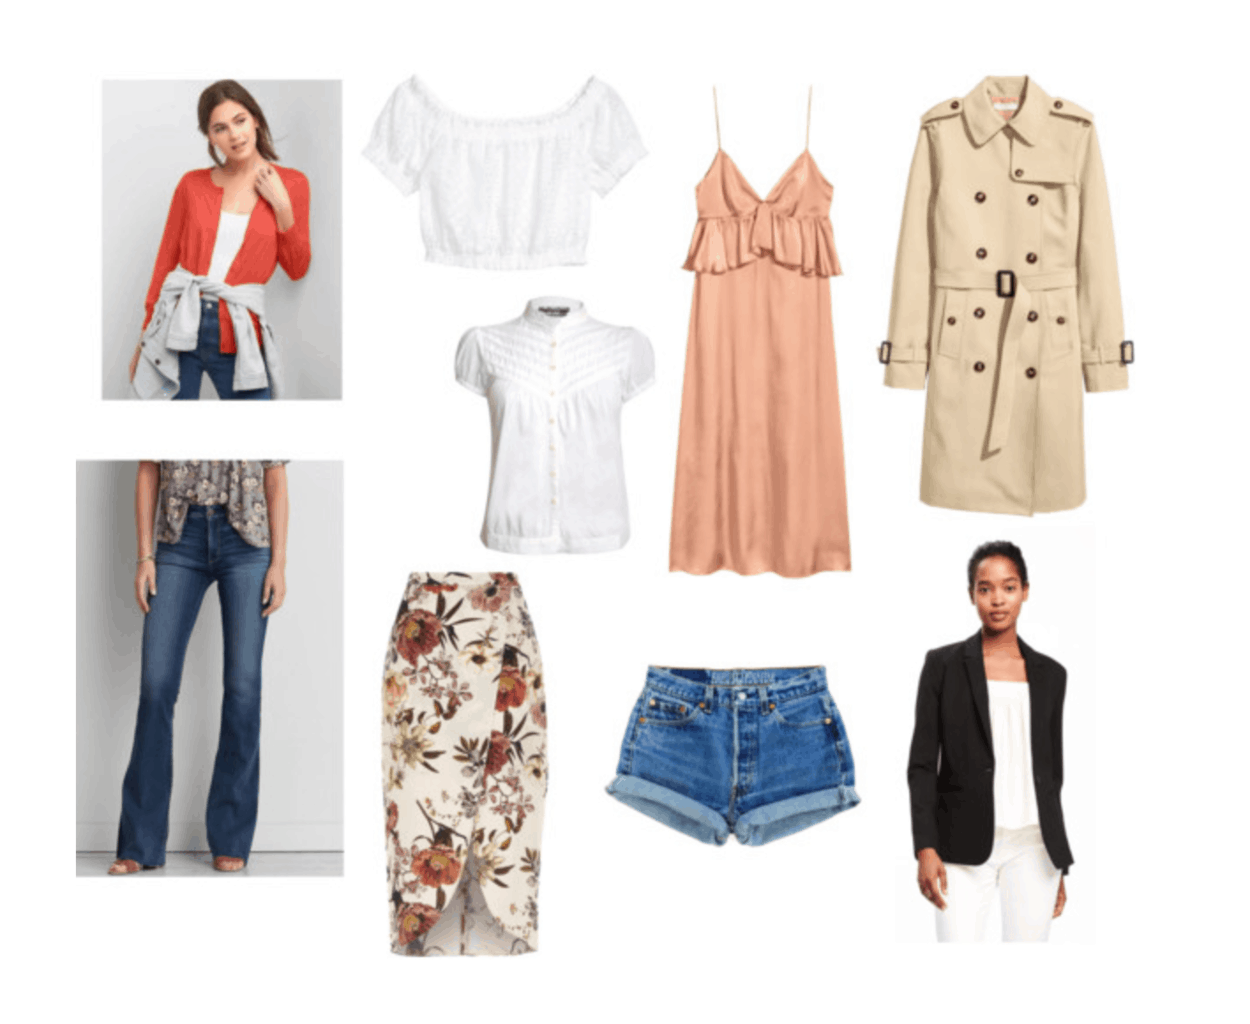 Jeanne Damas style: Example of Jeanne's clothing essentials, including off-the-shoulder top, colorful cardigan, floral midi skirt, denim cutoffs, black blazer, pink dress, beige trench